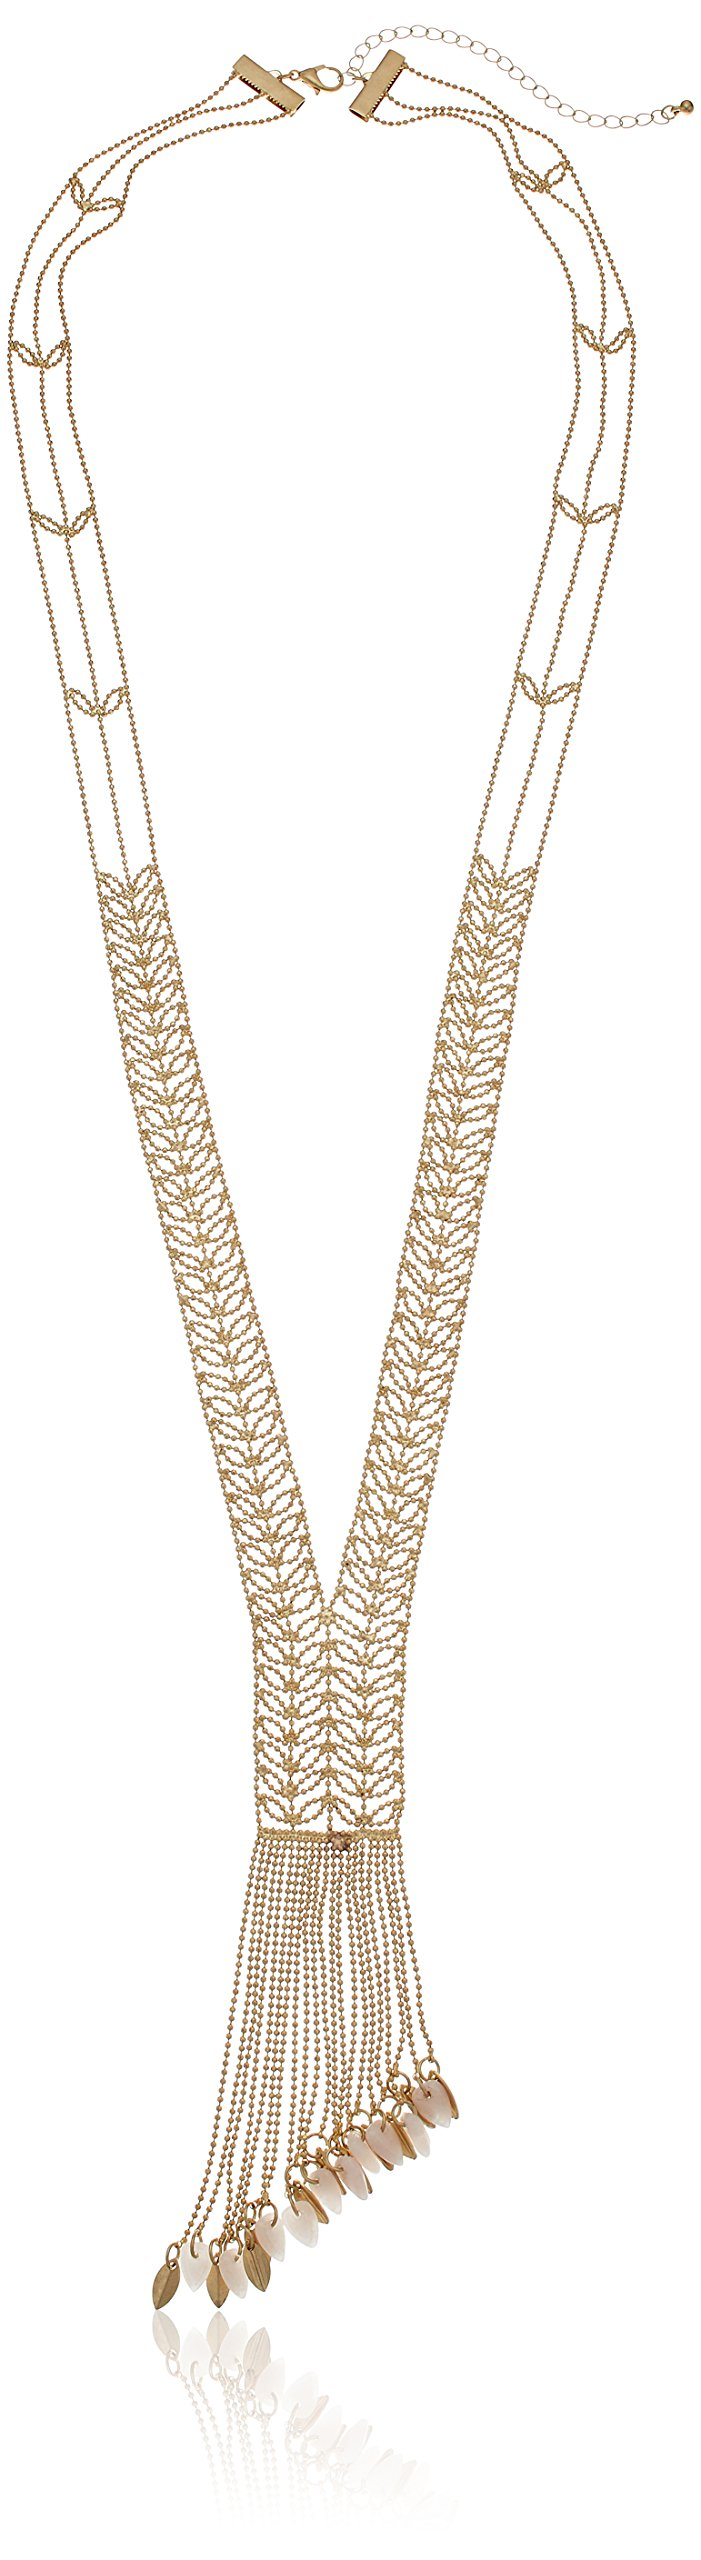 Danielle Nicole Ivy Y-Shaped Necklace, 34'' + 4'' Extender